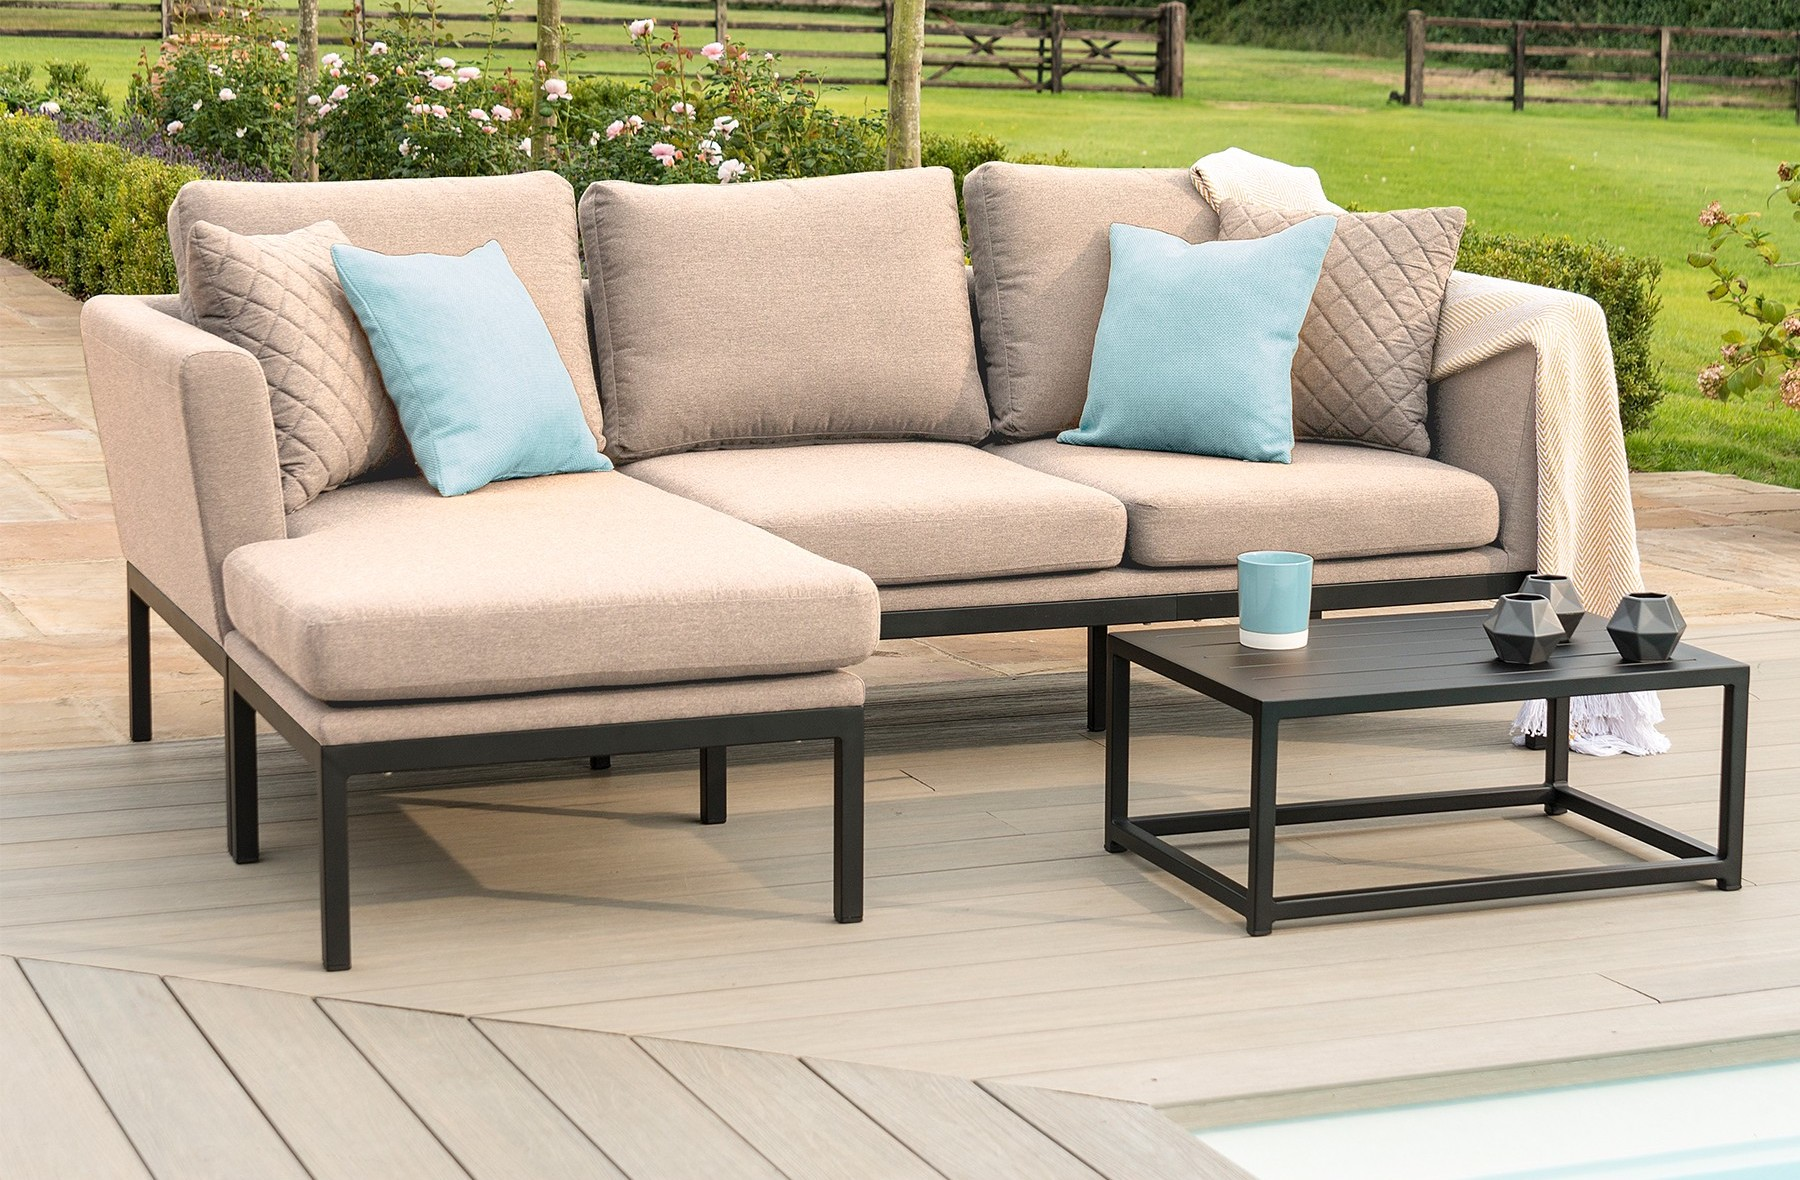 The Pulse Outdoor Sofa Set from Maze at Next.co.uk